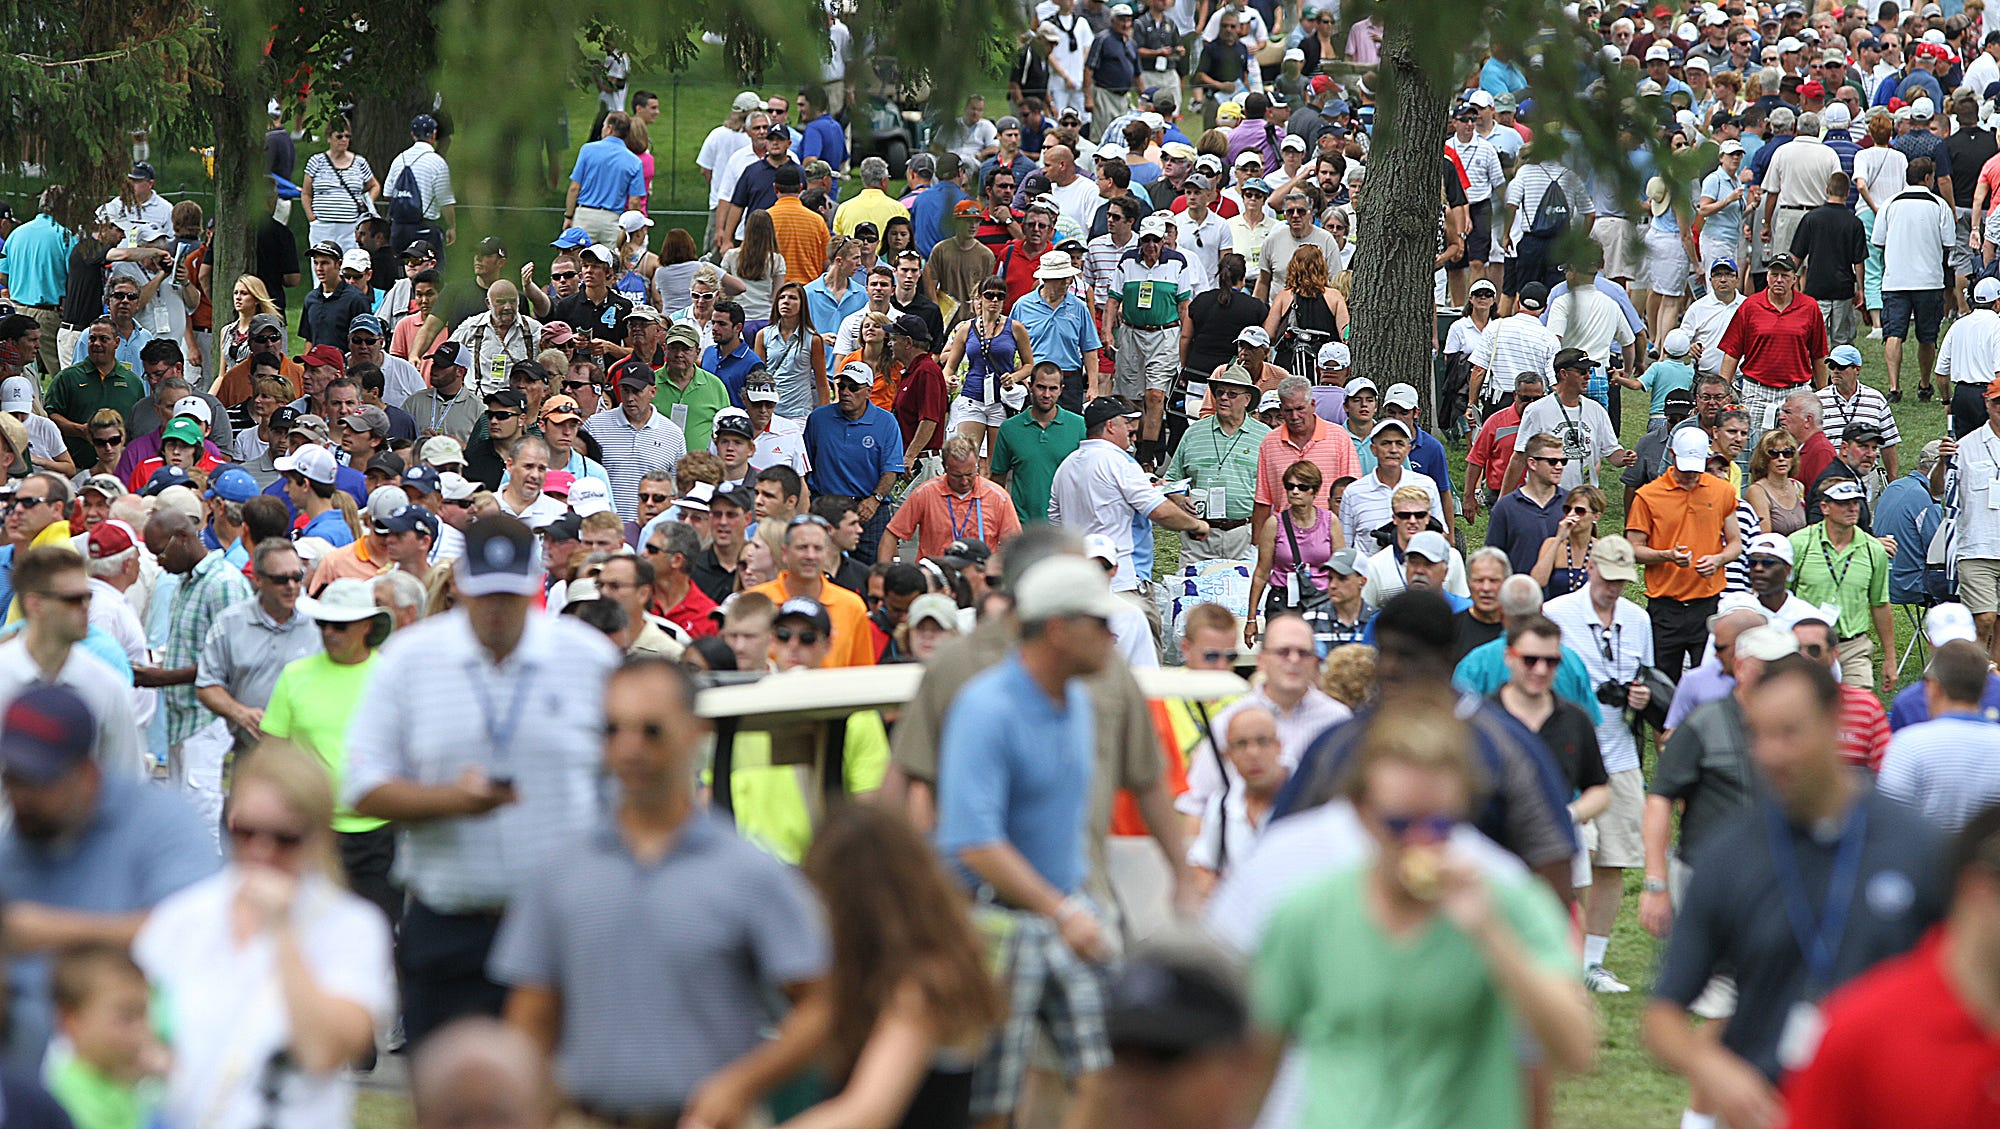 Crowds were large during the opening round of the PGA Championship.